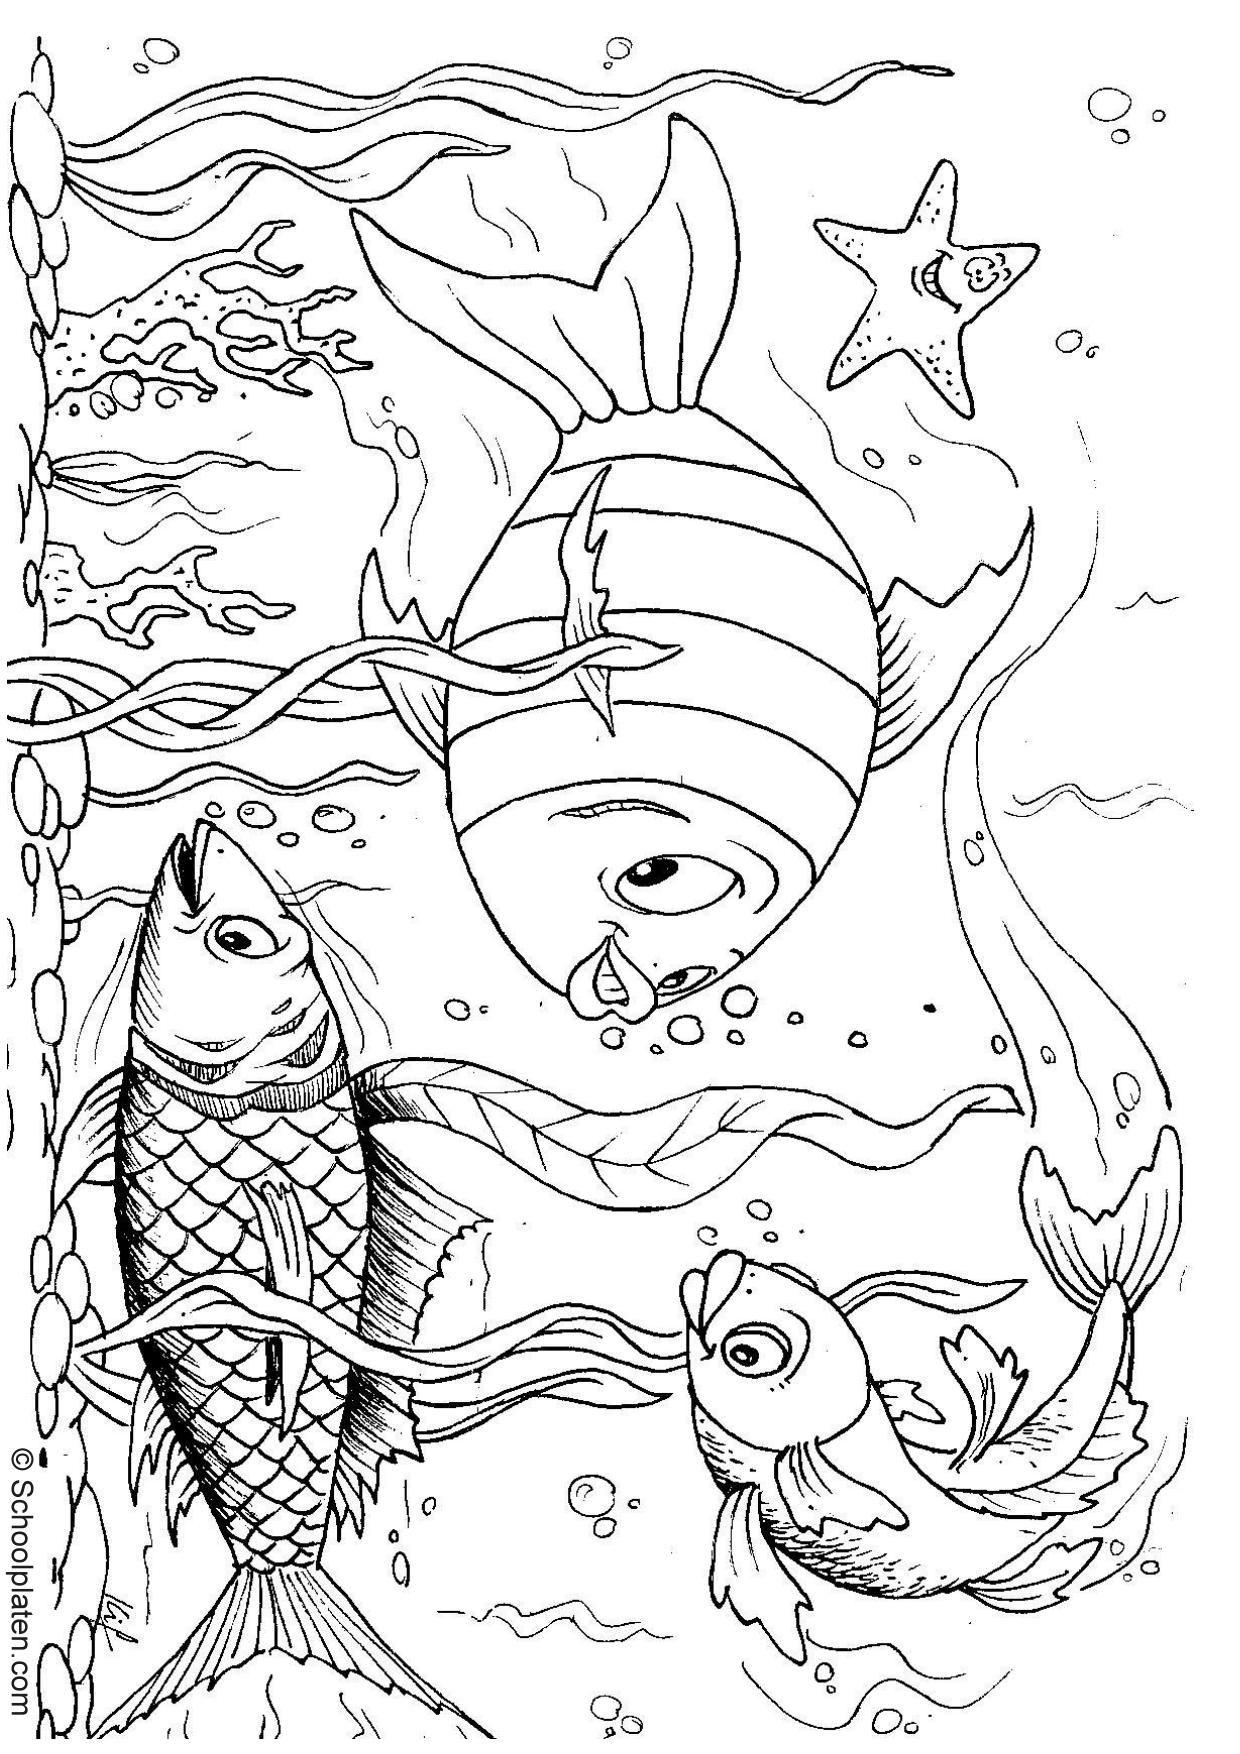 Ocean fish coloring page | Fish coloring page, Coloring ...